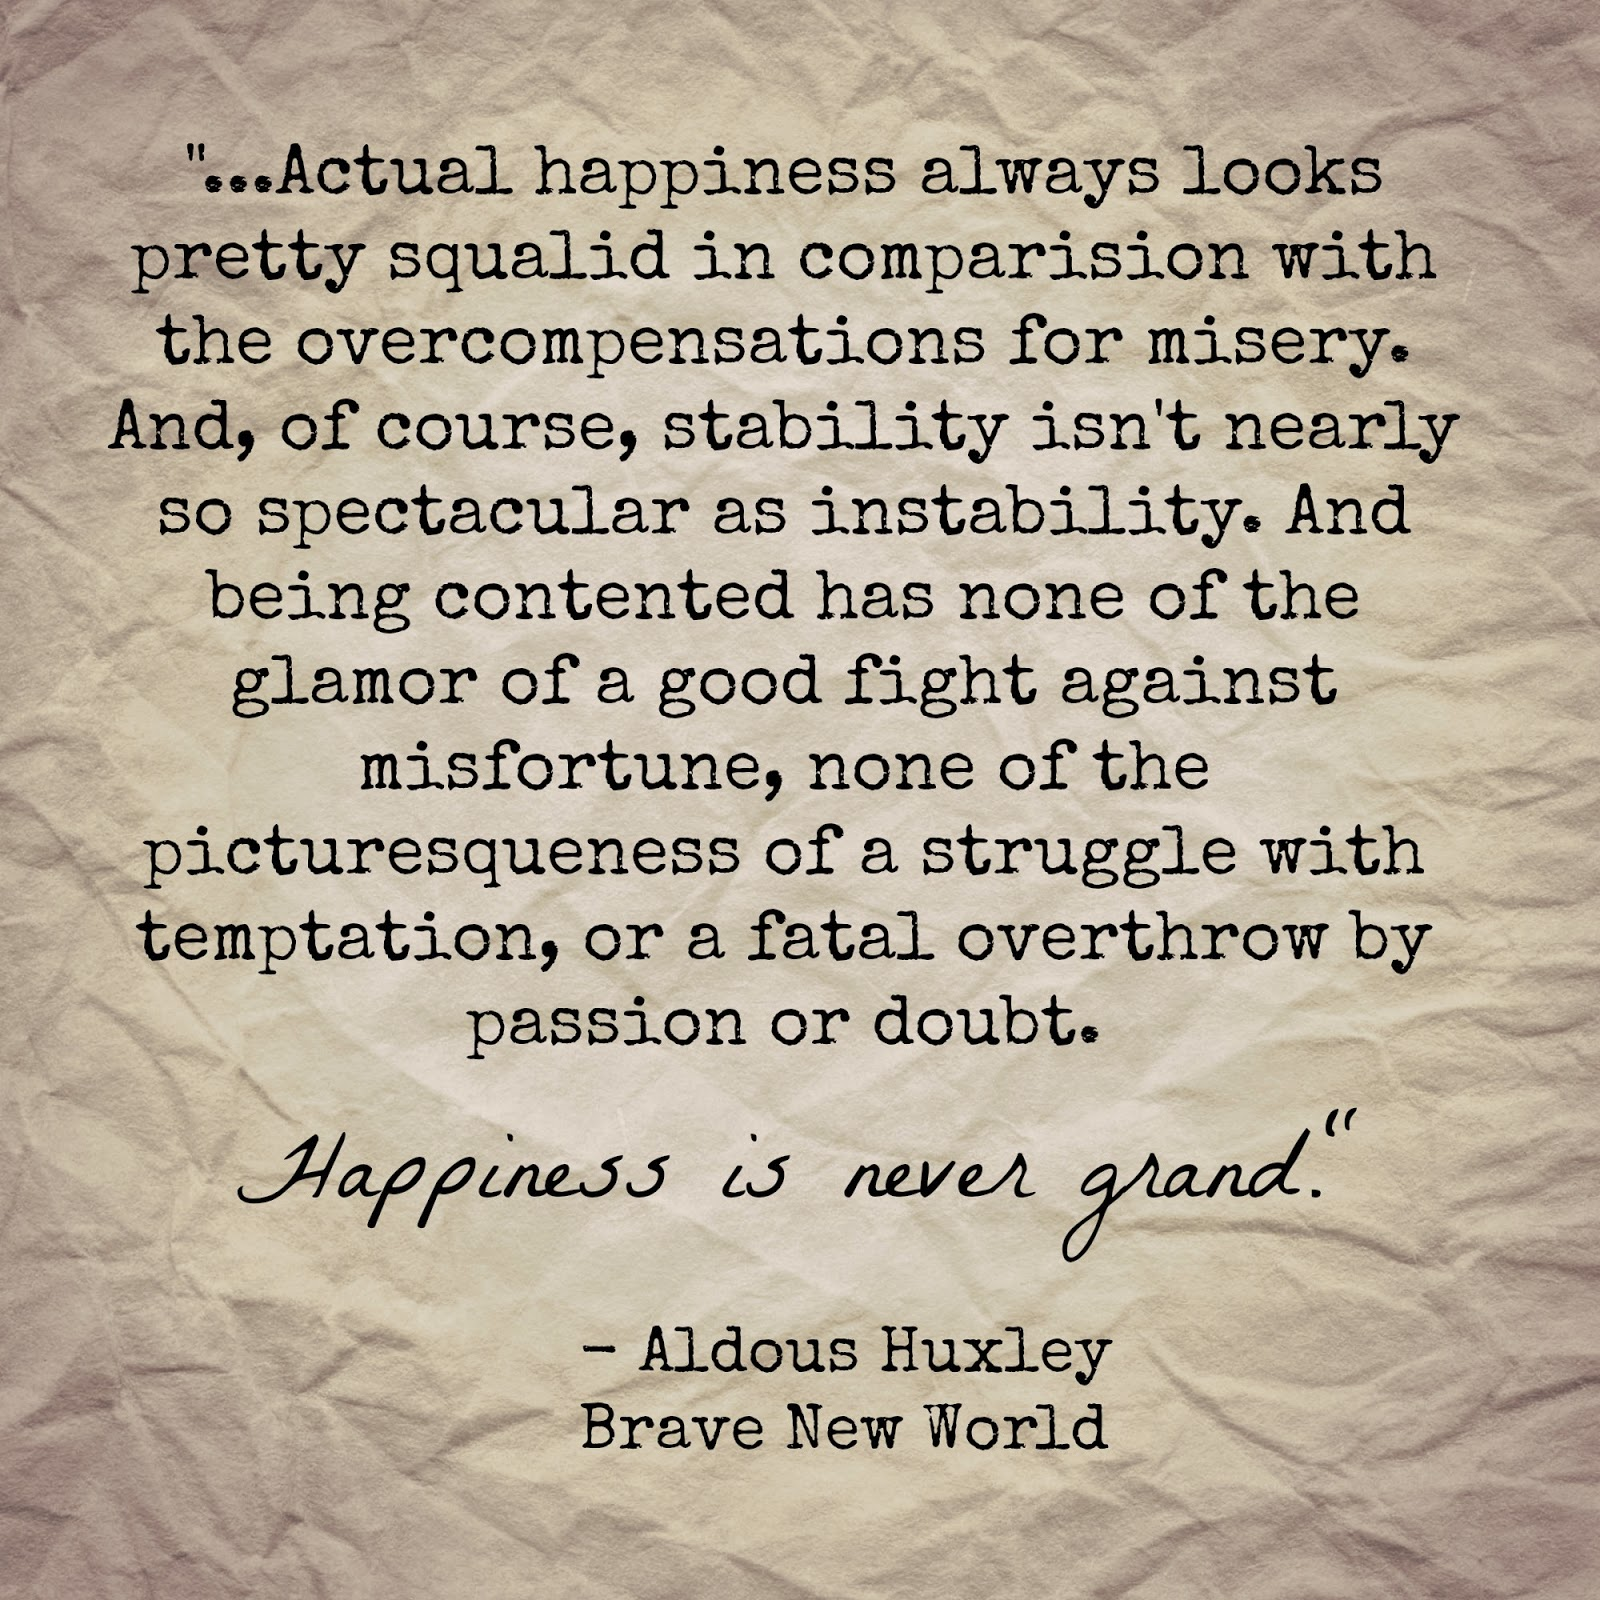 brave new world happiness quotes  brave new world happiness quotes